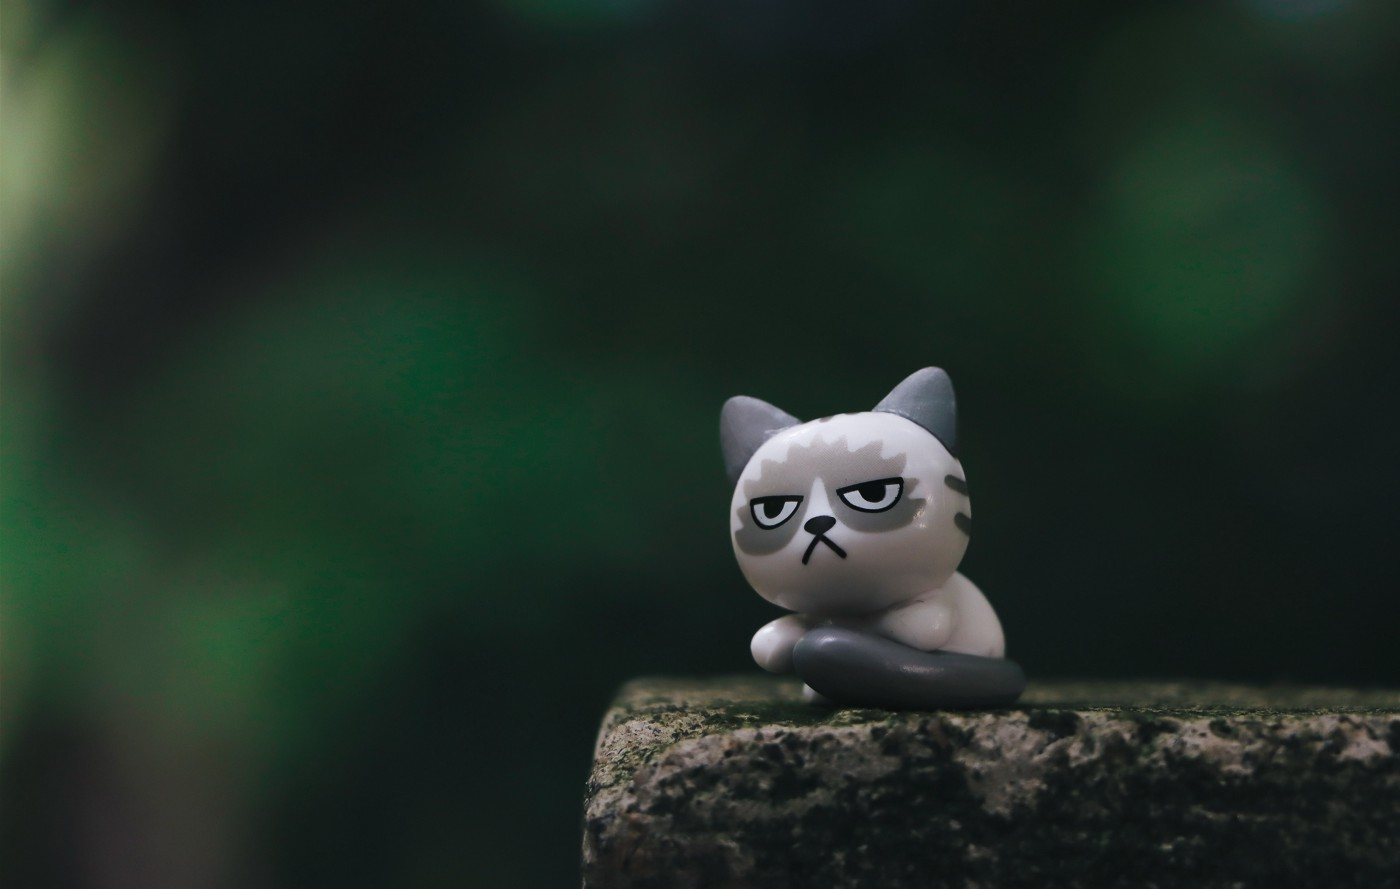 A toy cat with a grumpy mood staring out in the space.